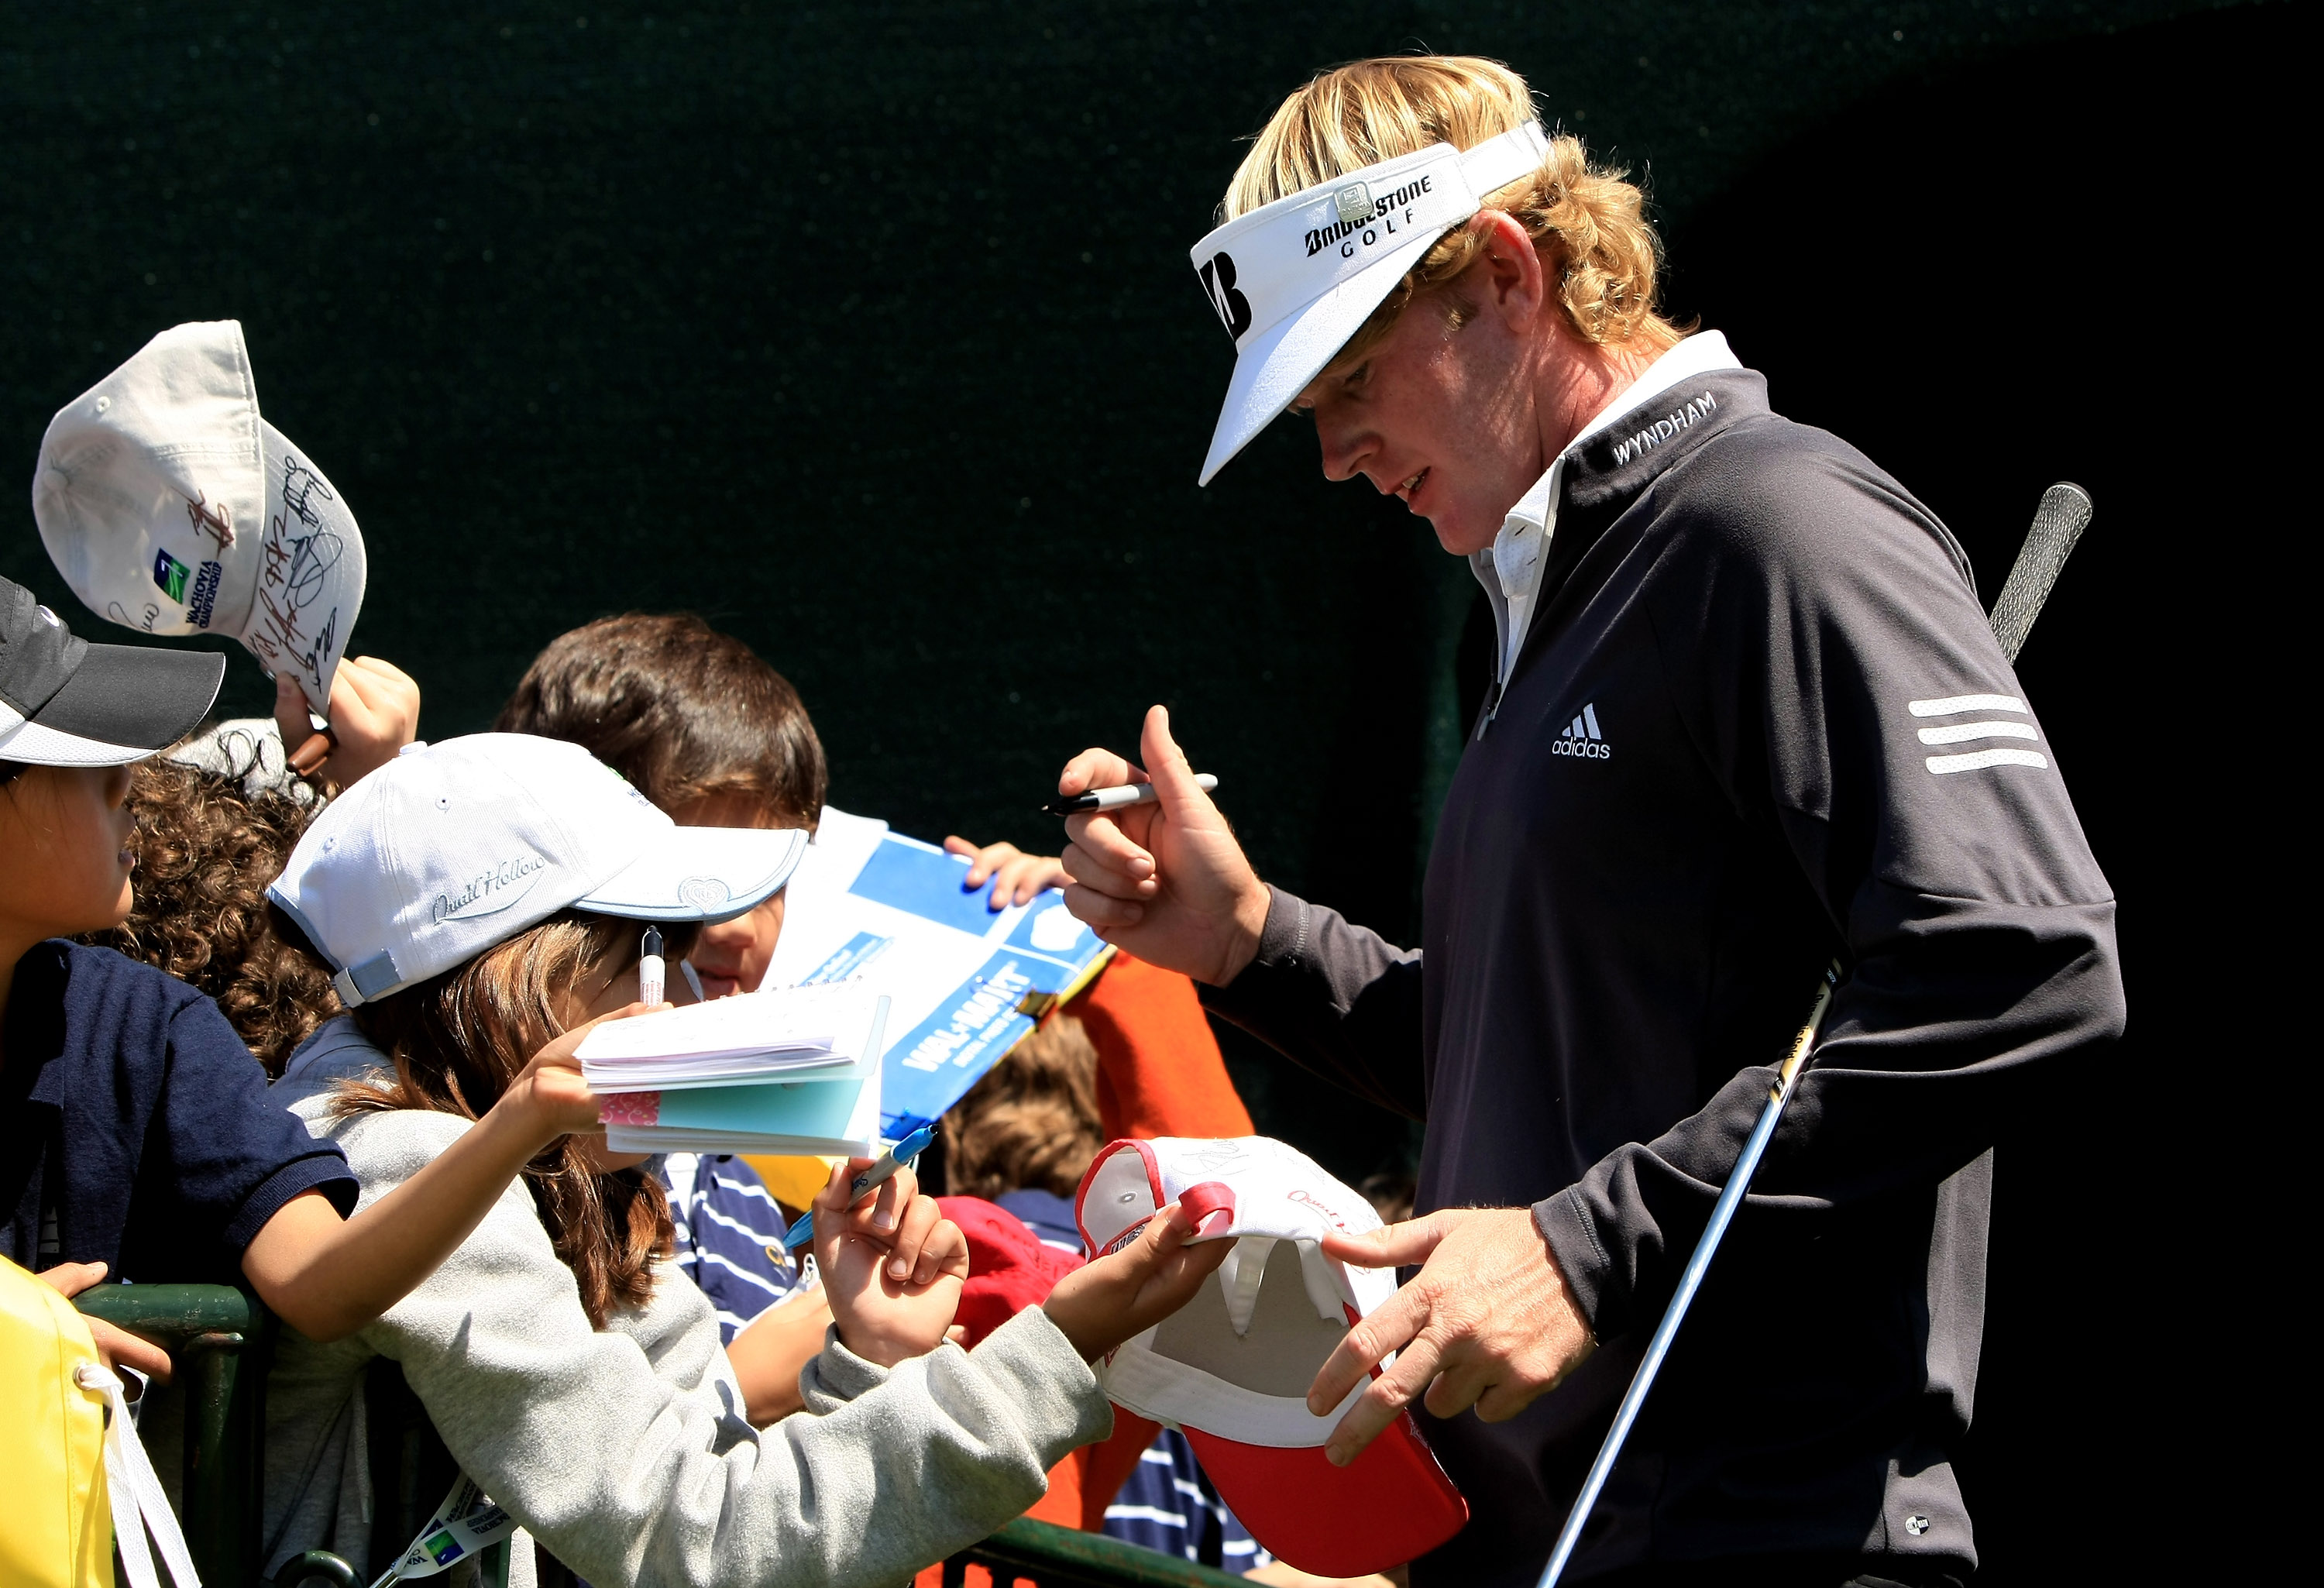 CHARLOTTE, NC - APRIL 29:  Brandt Snedker signs autograpghs for young fans during the Tuesday practice round for the Wachovia Championship at Quail Hollow Country Club on April 29, 2008 Charlotte, North Carolina.  (Photo by Richard Heathcote/Getty Images)